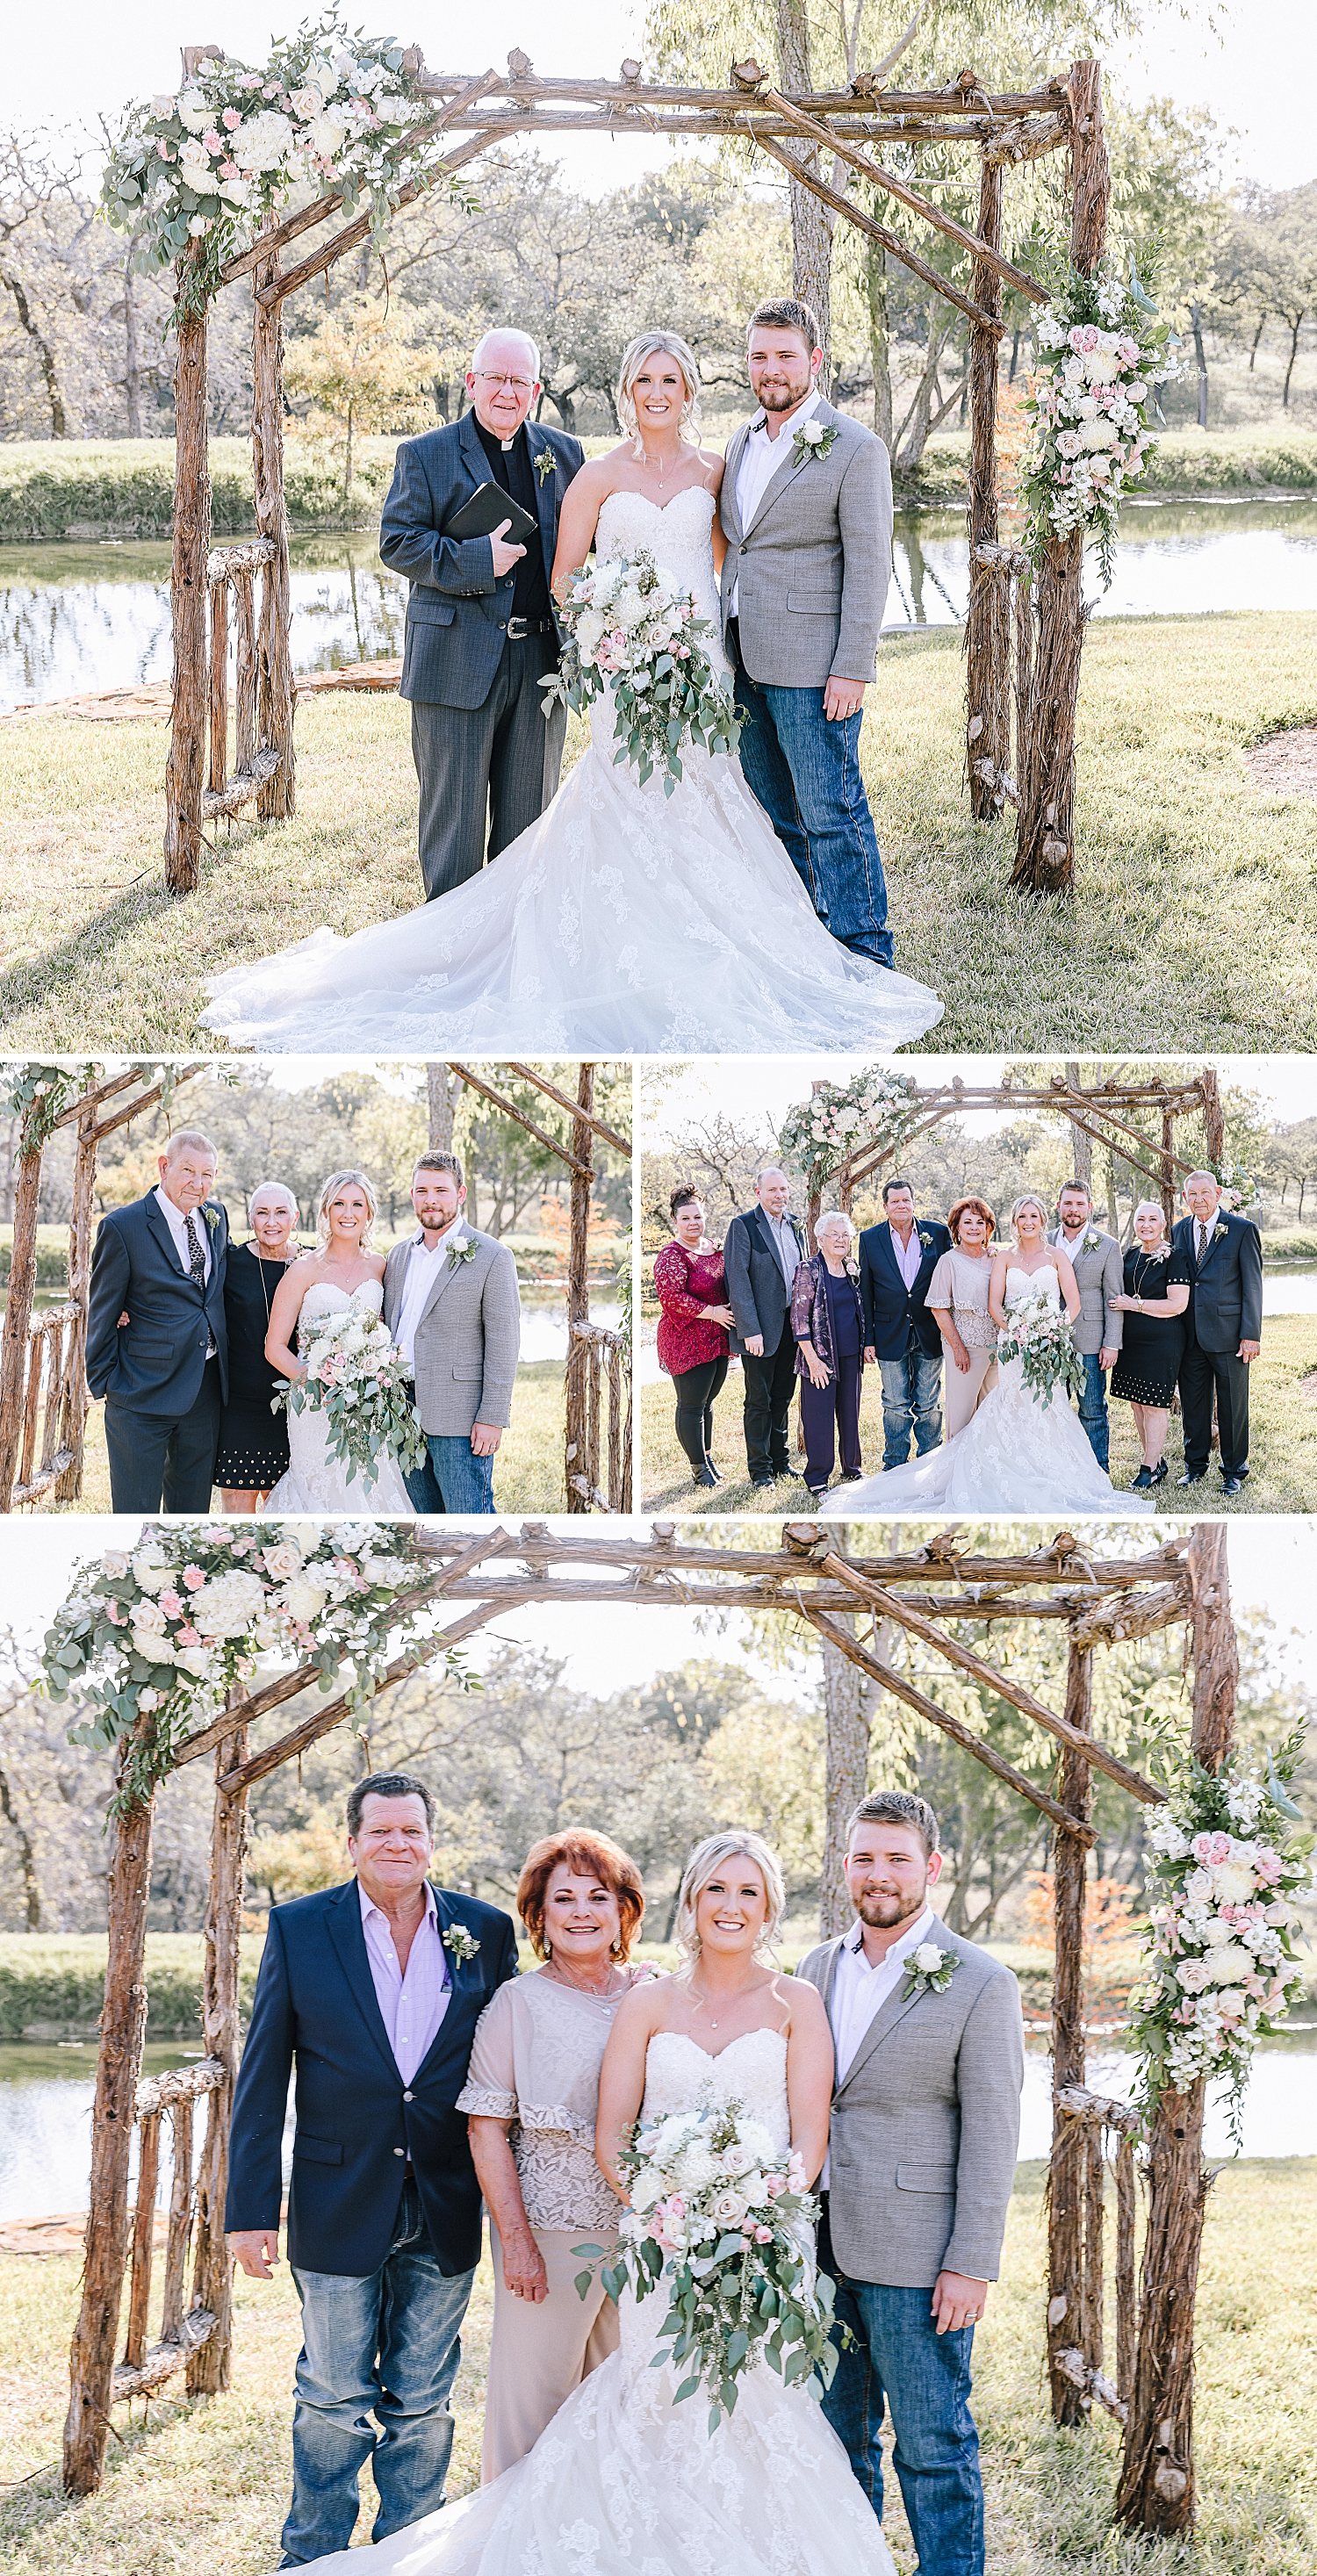 Rackler-Ranch-LaVernia-Texas-Wedding-Carly-Barton-Photography_0031.jpg